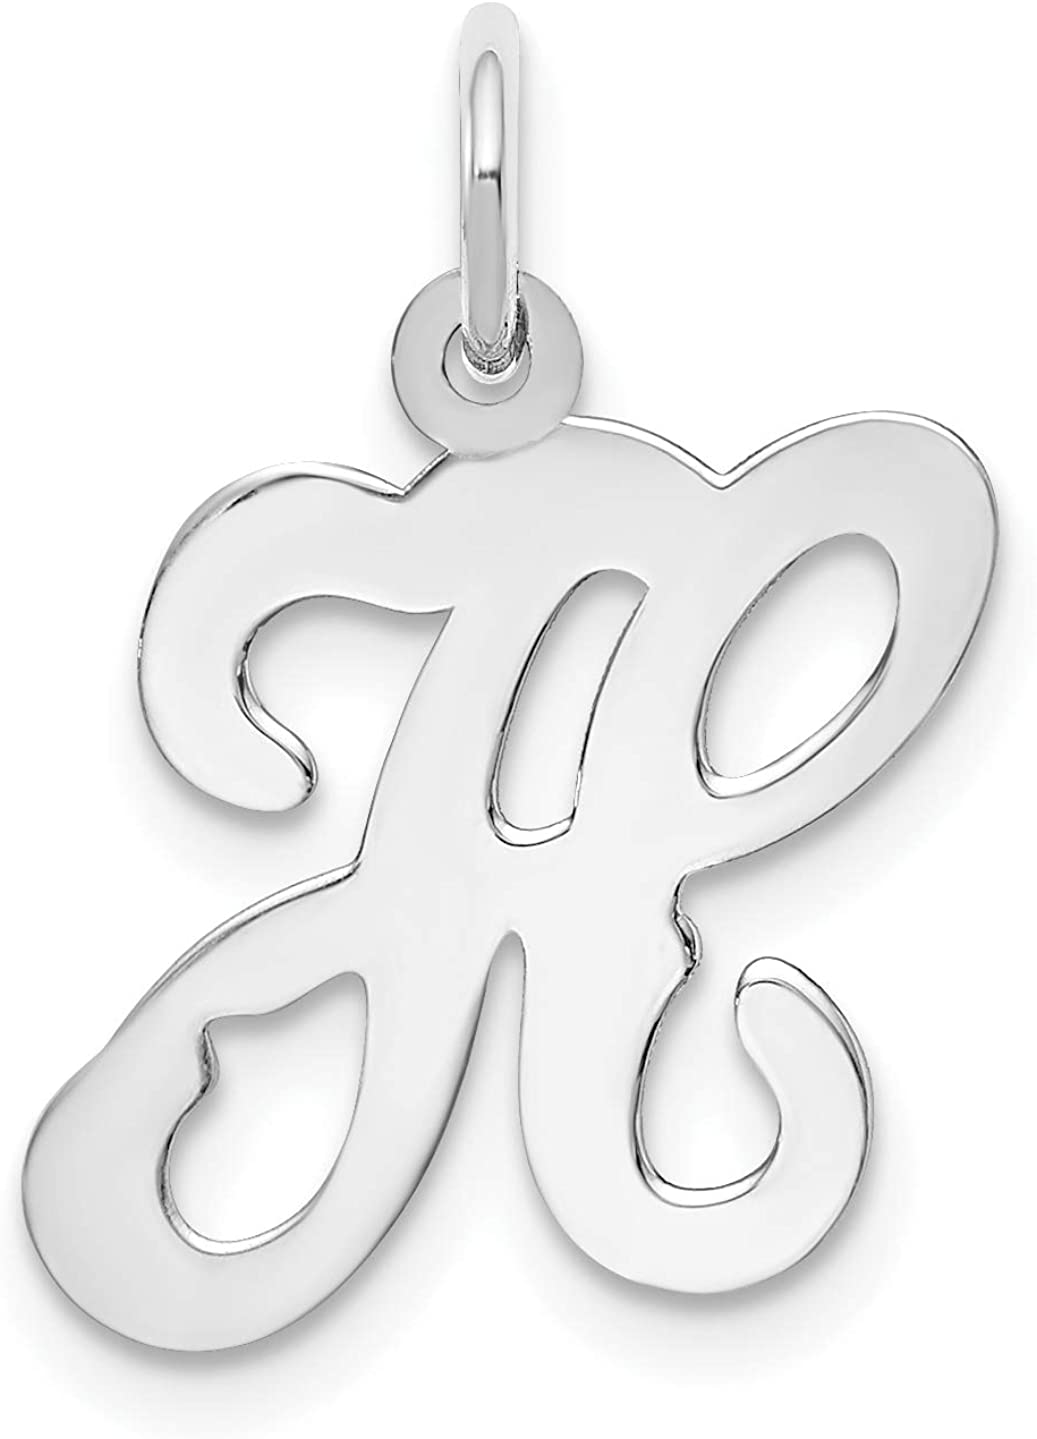 Sales of SALE items from new works wholesale 14KW White Gold Script H Letter Charm Initial